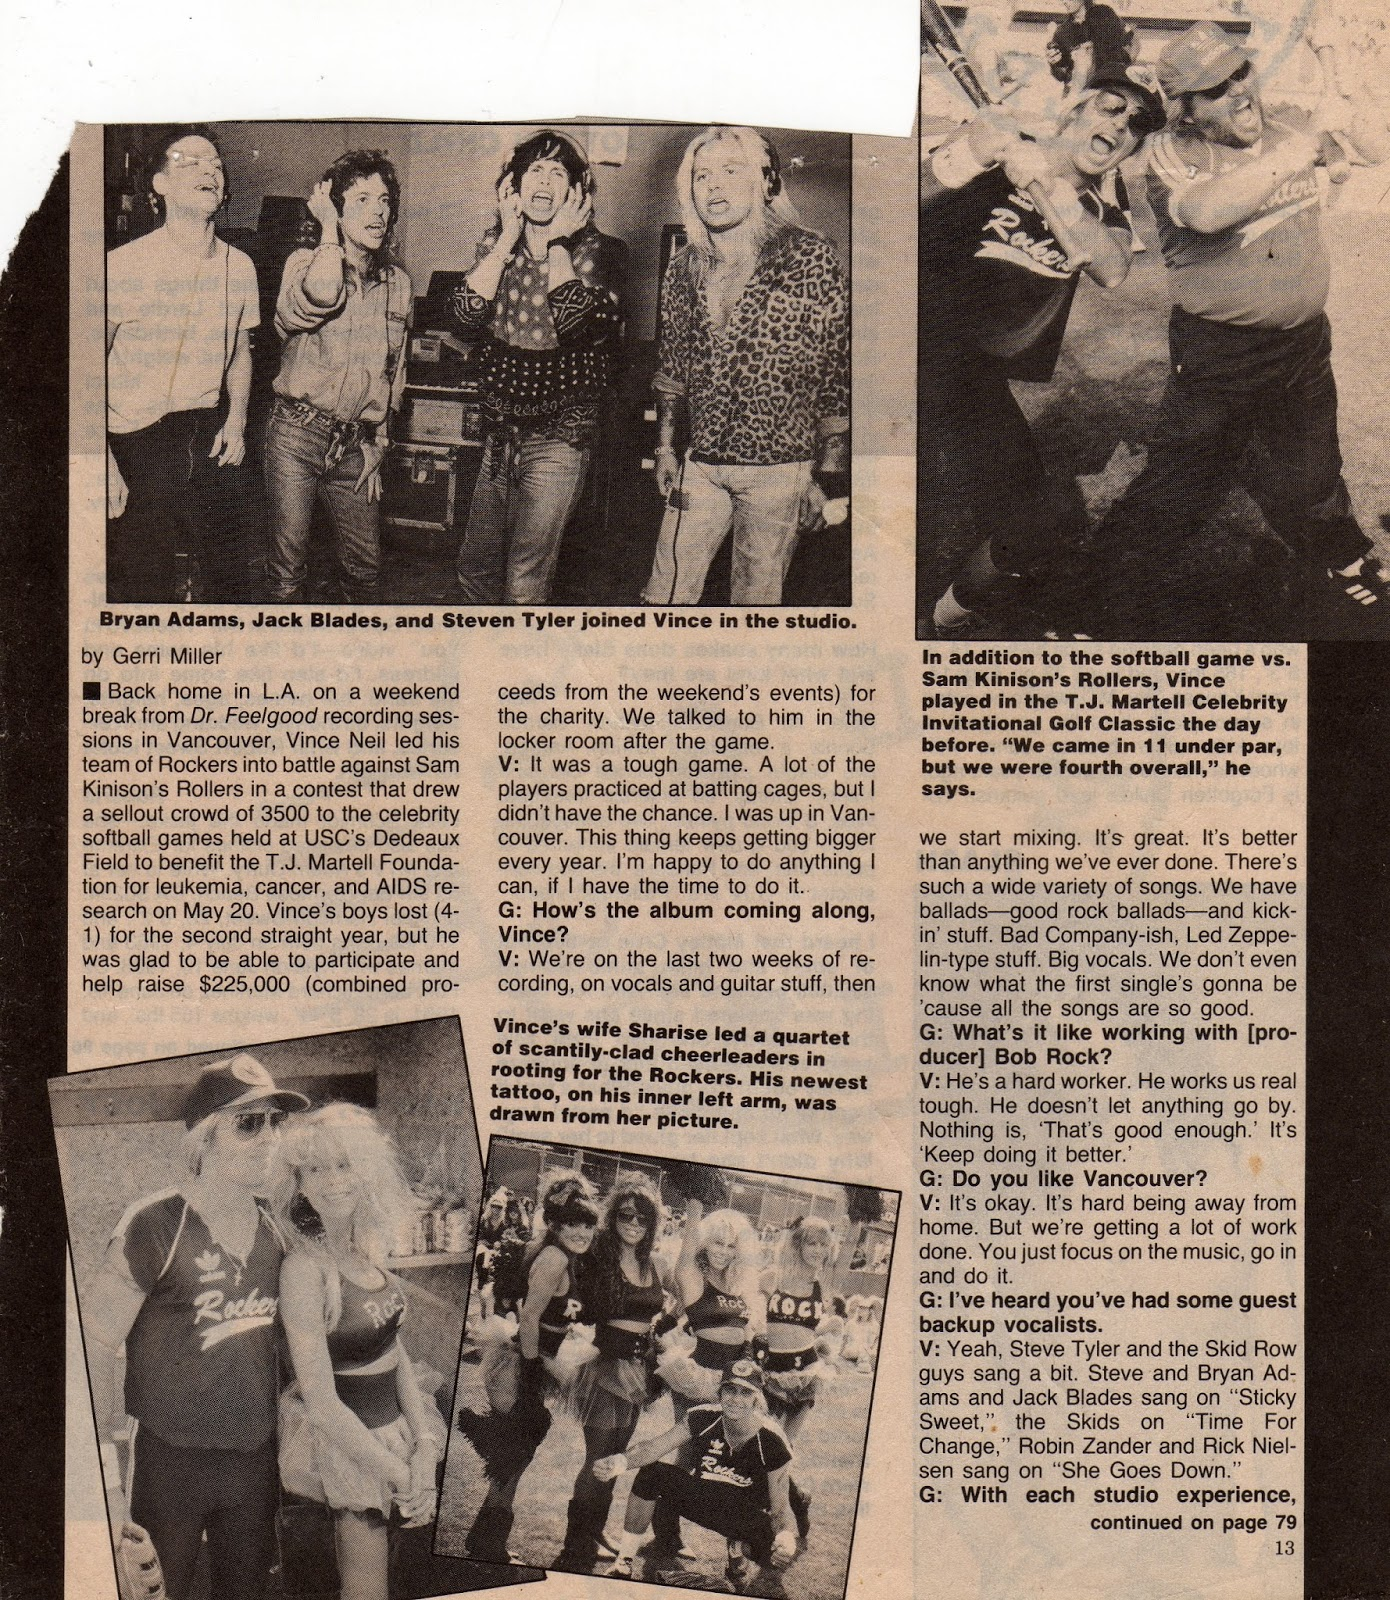 Sam kinison accident scene photos -  Talks To Gerri Miller Of Metal Edge Magazine About The Loss To Sam Kinison S Team Updates Her On The Final Stages Of The Recording Of Dr Feelgood